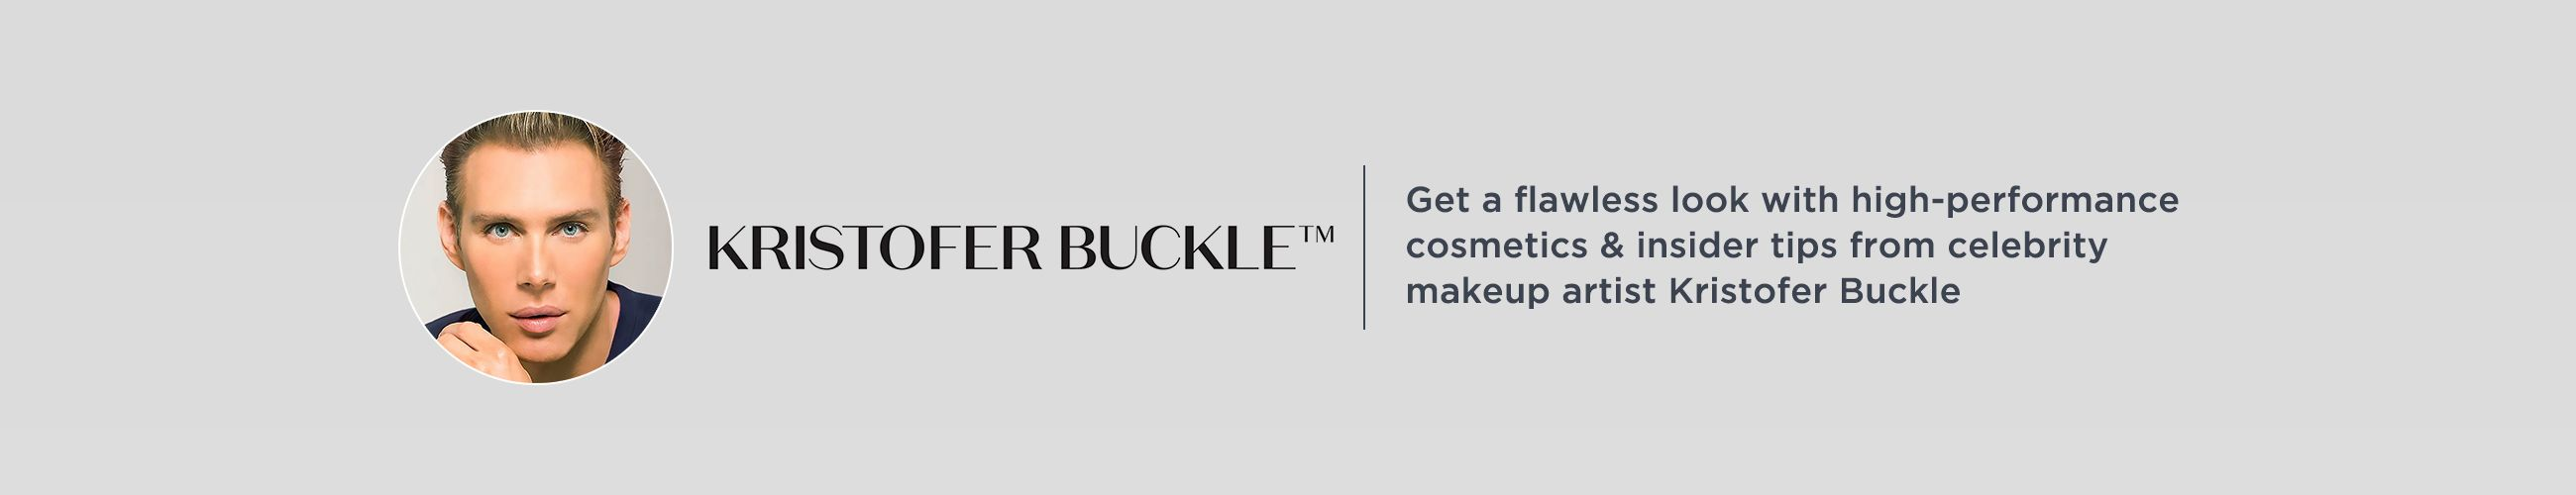 Kristofer Buckle(R) Get a flawless look with high-performance cosmetics & insider tips from celebrity makeup artist Kristofer Buckle.